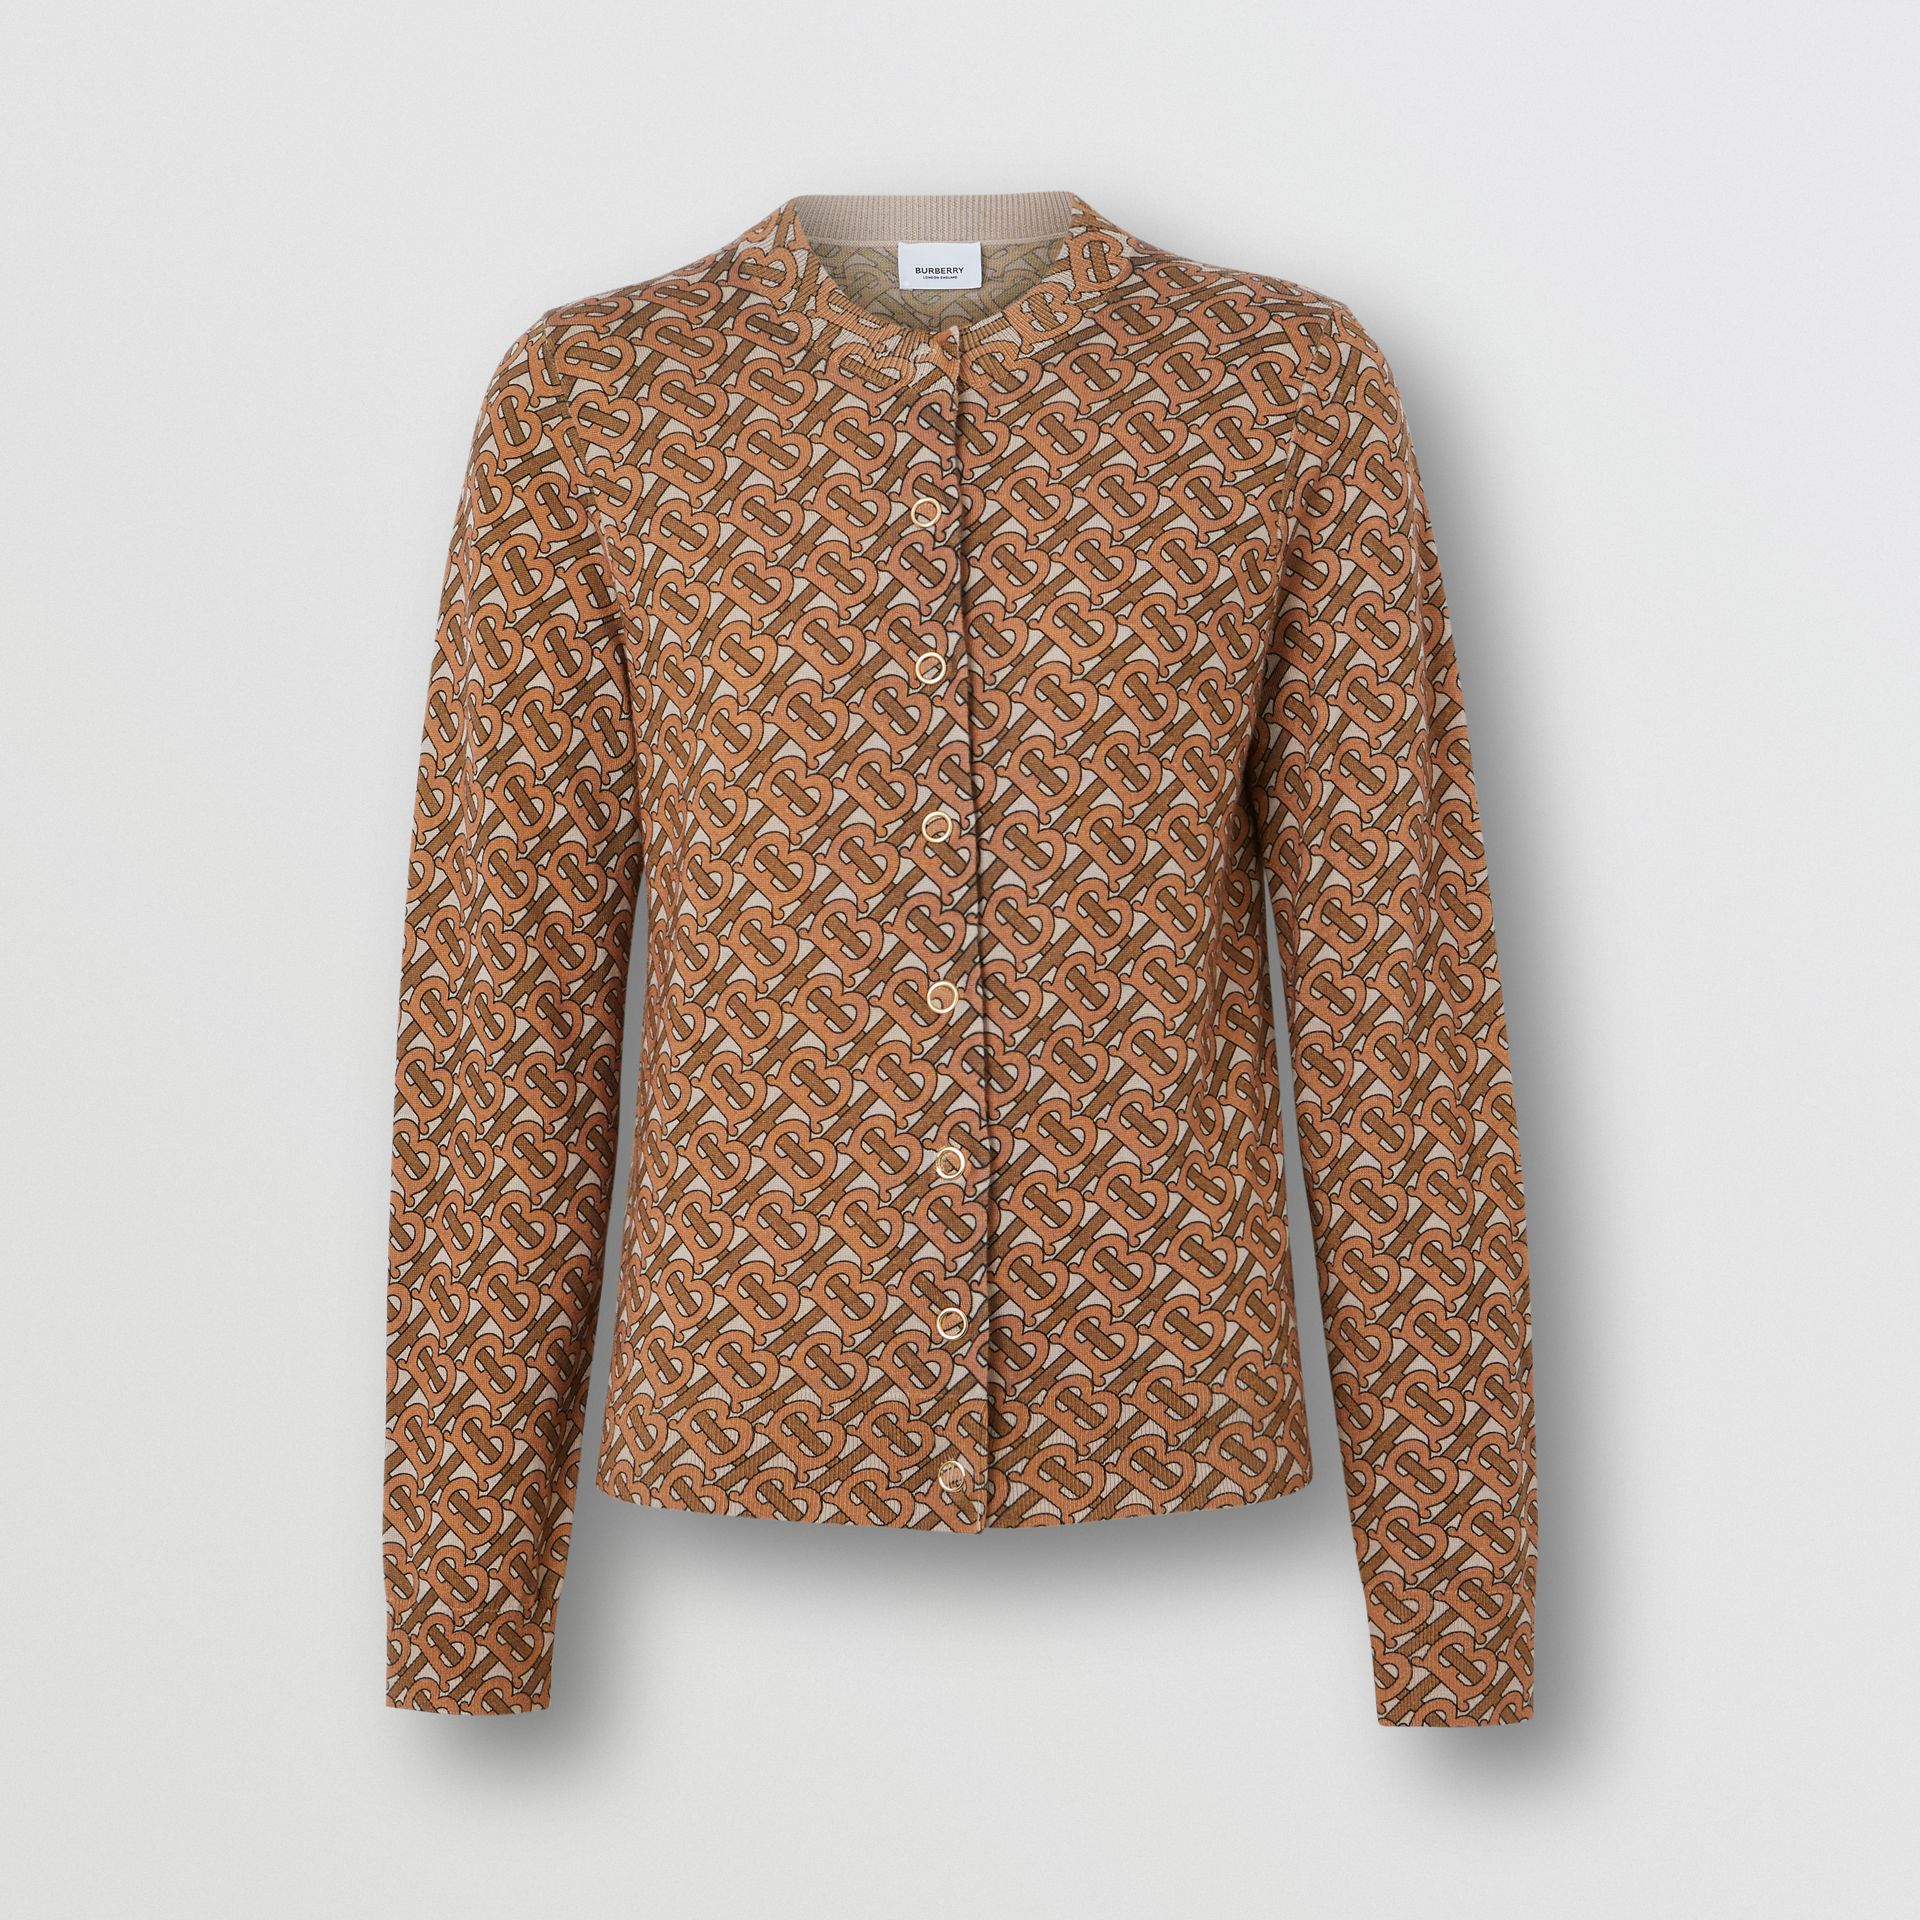 Monogram Print Merino Wool Cardigan in Beige - Women | Burberry - gallery image 3